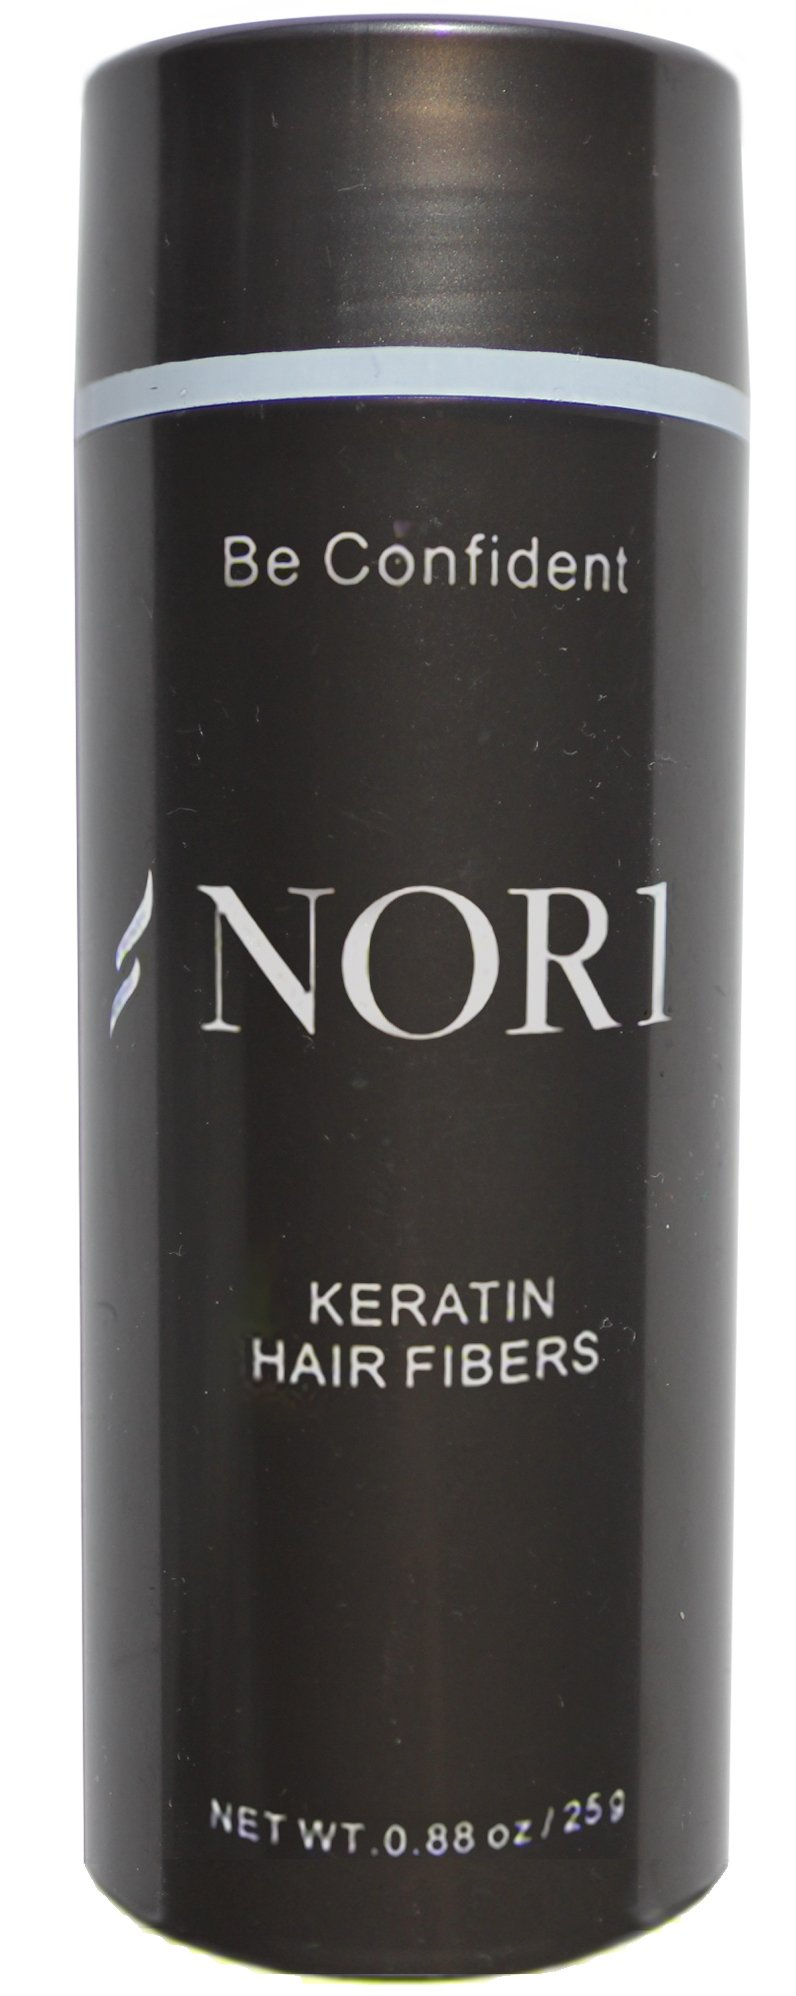 Nor1 Keratin Hair Building Fibers: Hair Fiber Filler & Thickener for Men & Women - Cover Up & Concealer for Thinning Areas or Minor Bald Spot - Thicker, Fuller Hair in Seconds - 25g, Dark Brown by Nor1 (Image #1)